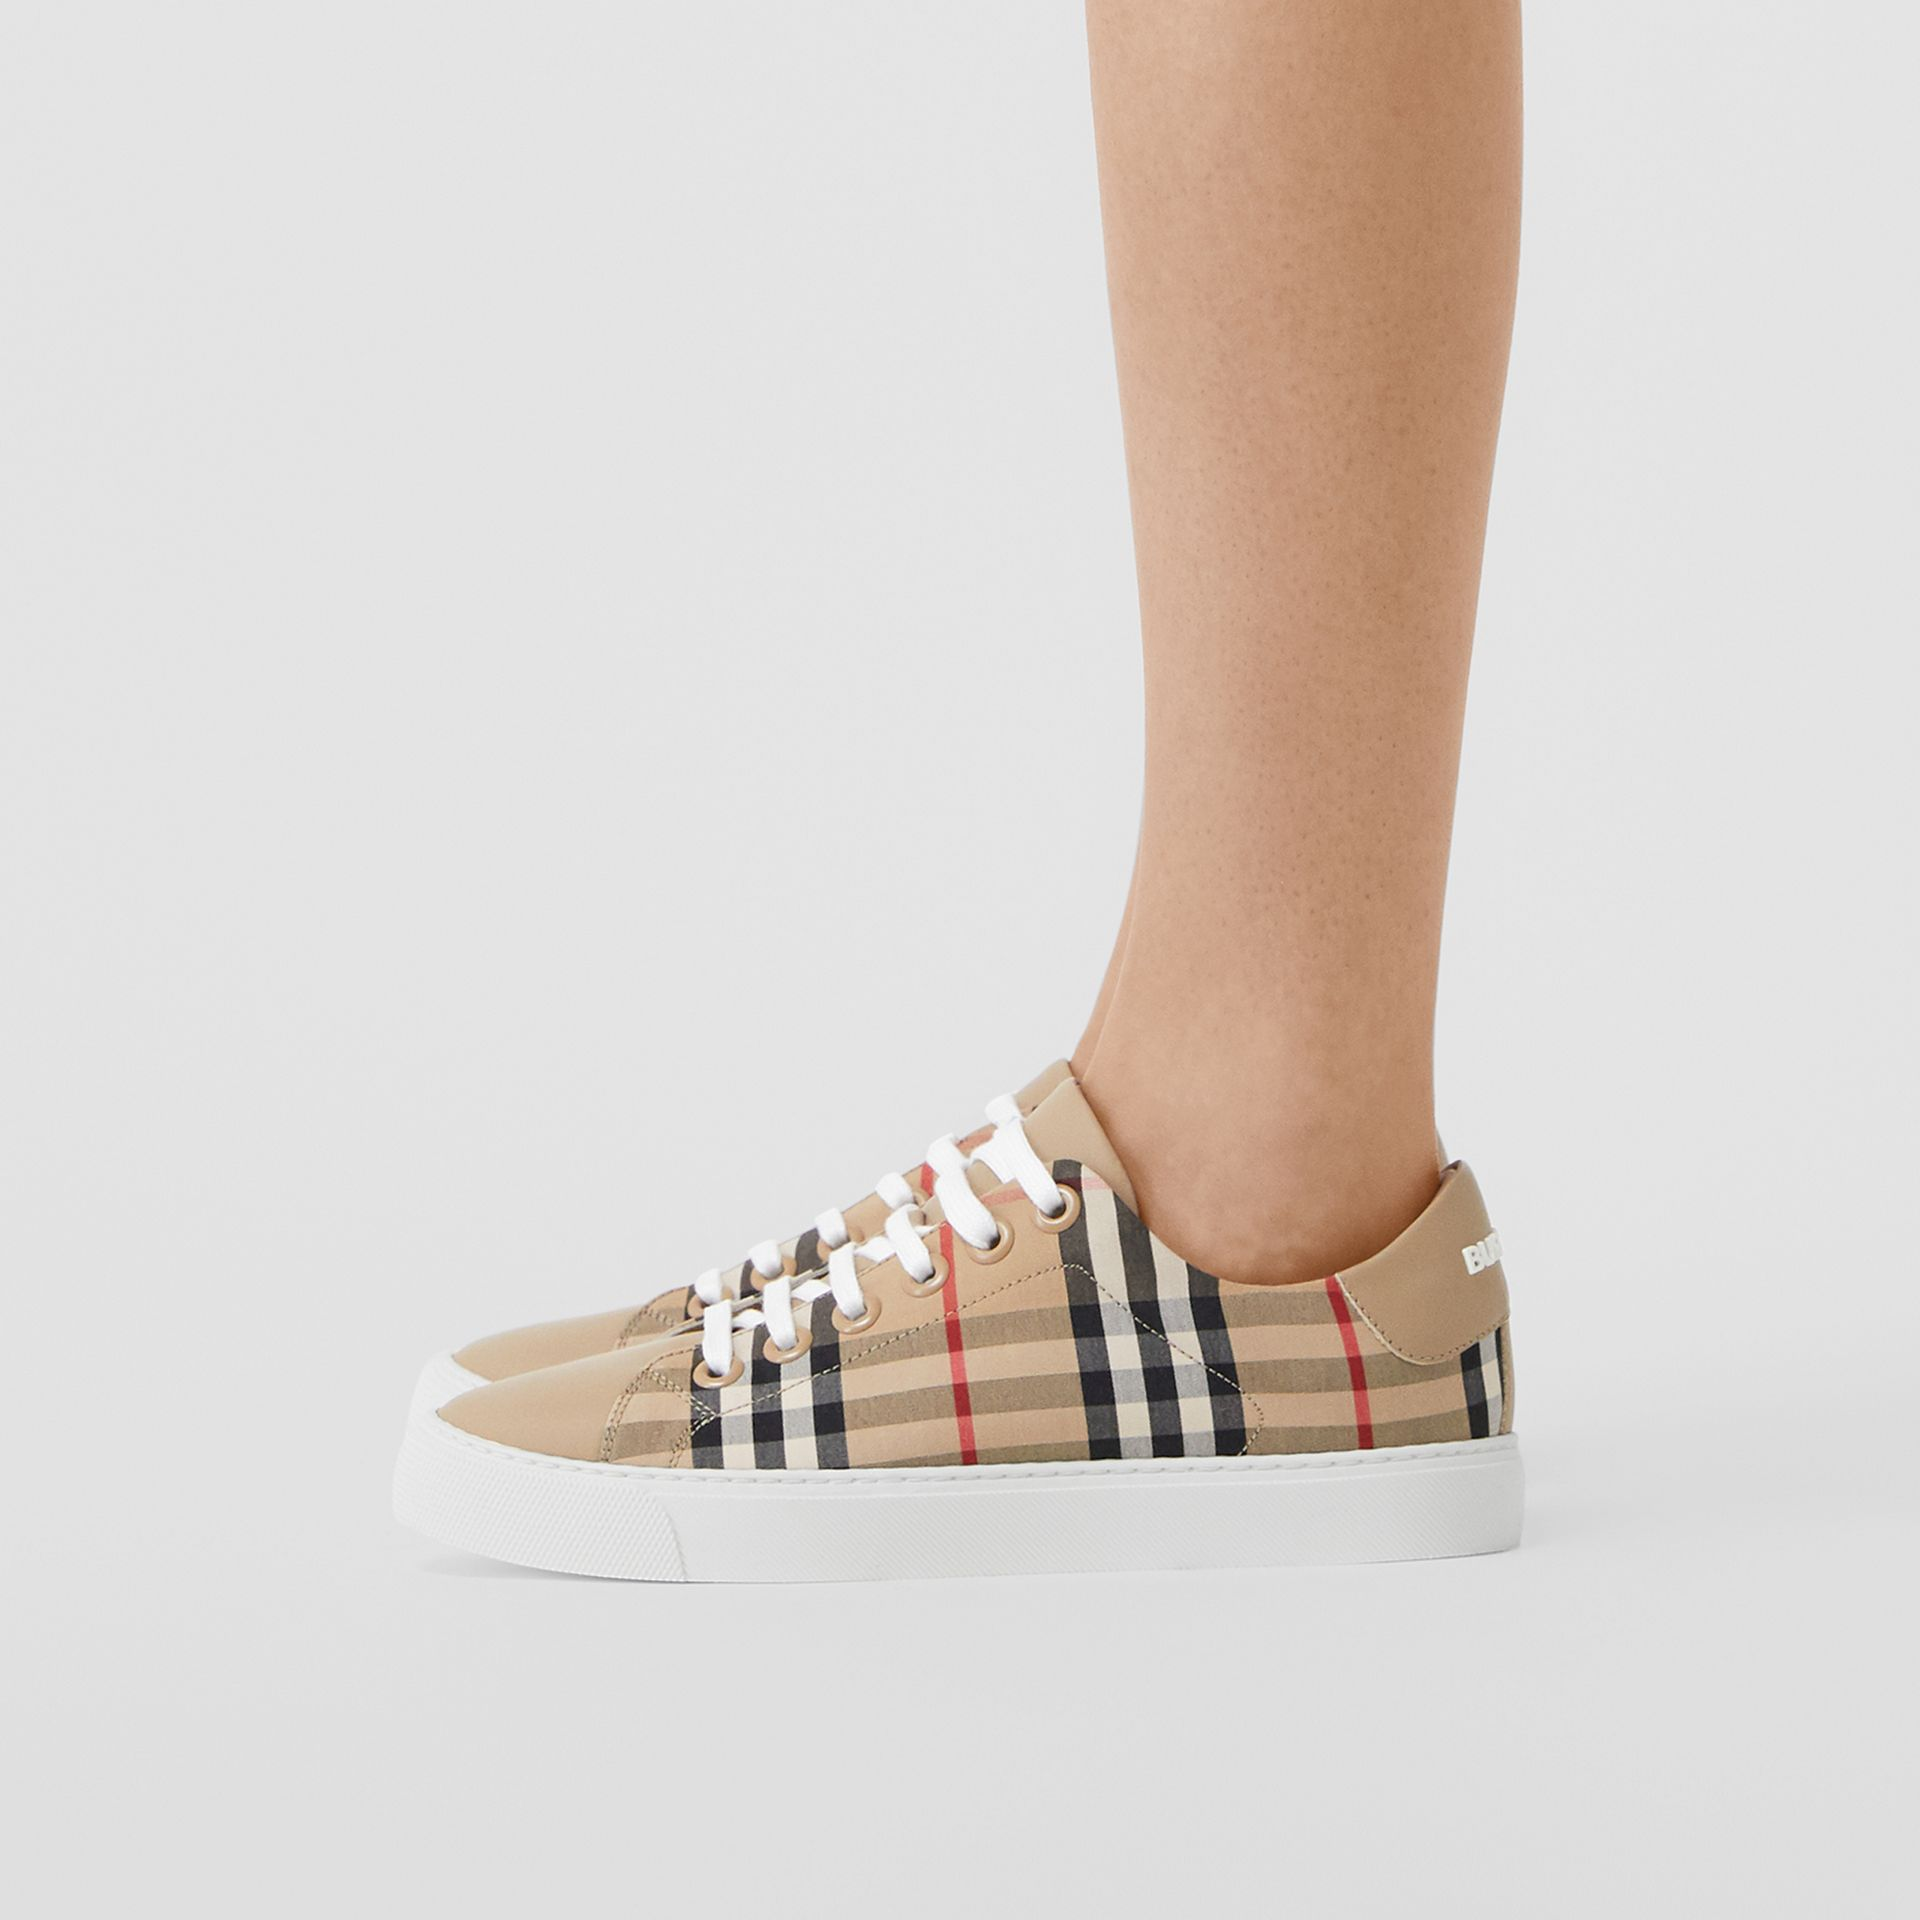 Vintage Check and Leather Sneakers in Archive Beige - Women | Burberry Australia - gallery image 2